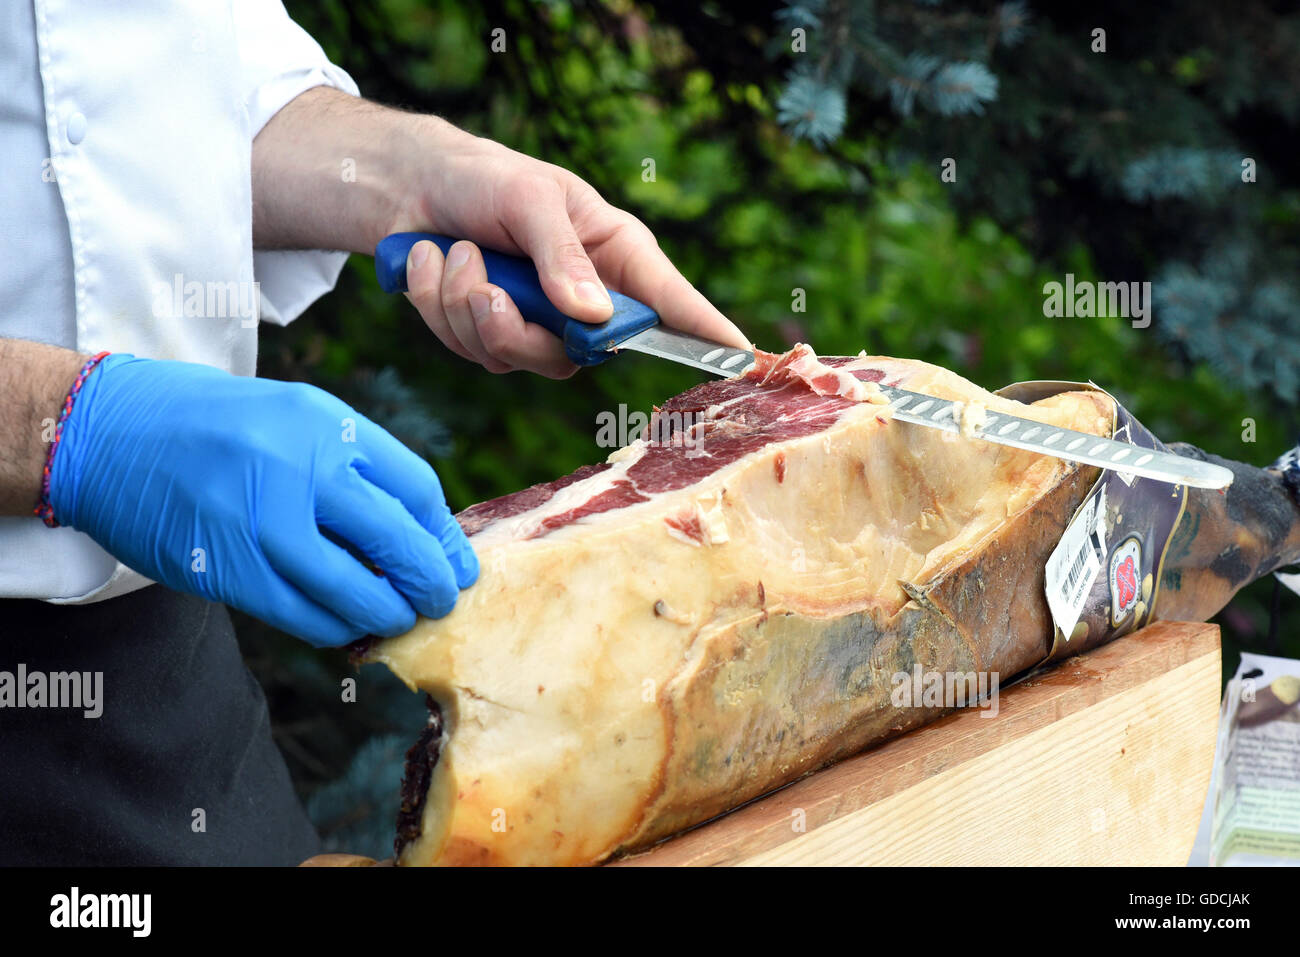 Junge Küche Catering Catering Stockfotos And Catering Bilder Alamy